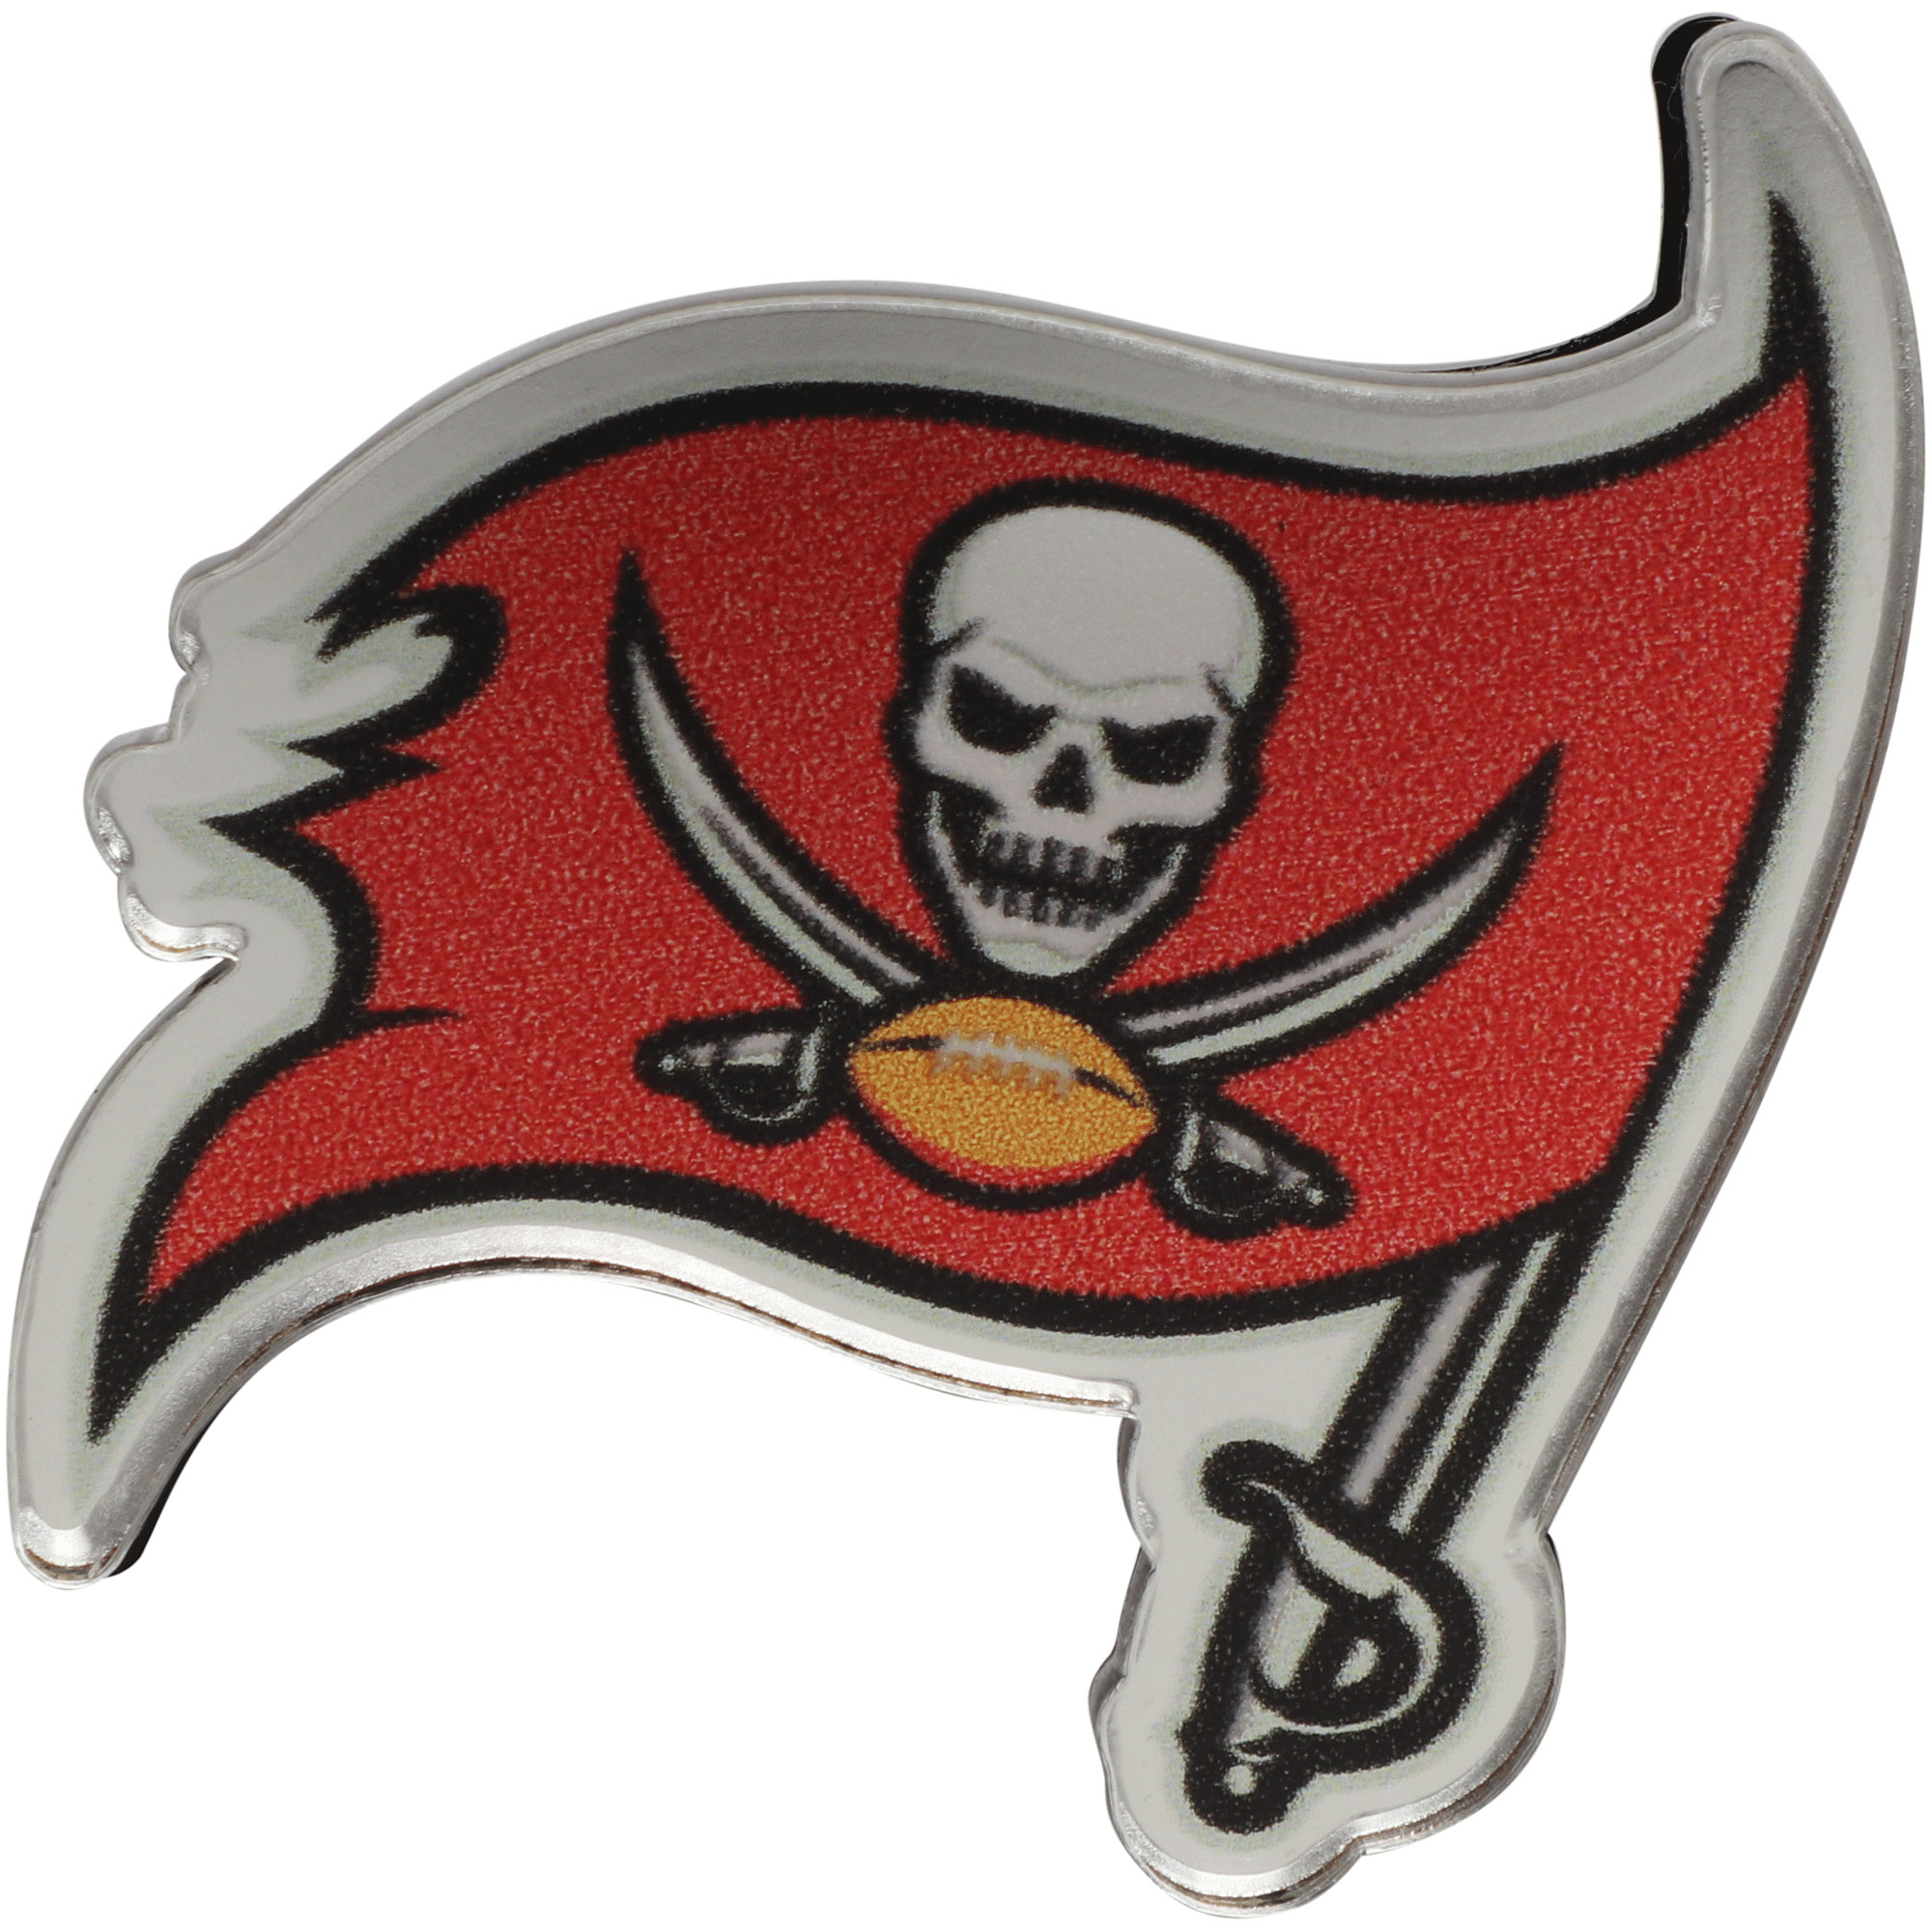 Tampa Bay Buccaneers Acrylic License Plate Screw Cover - No Size